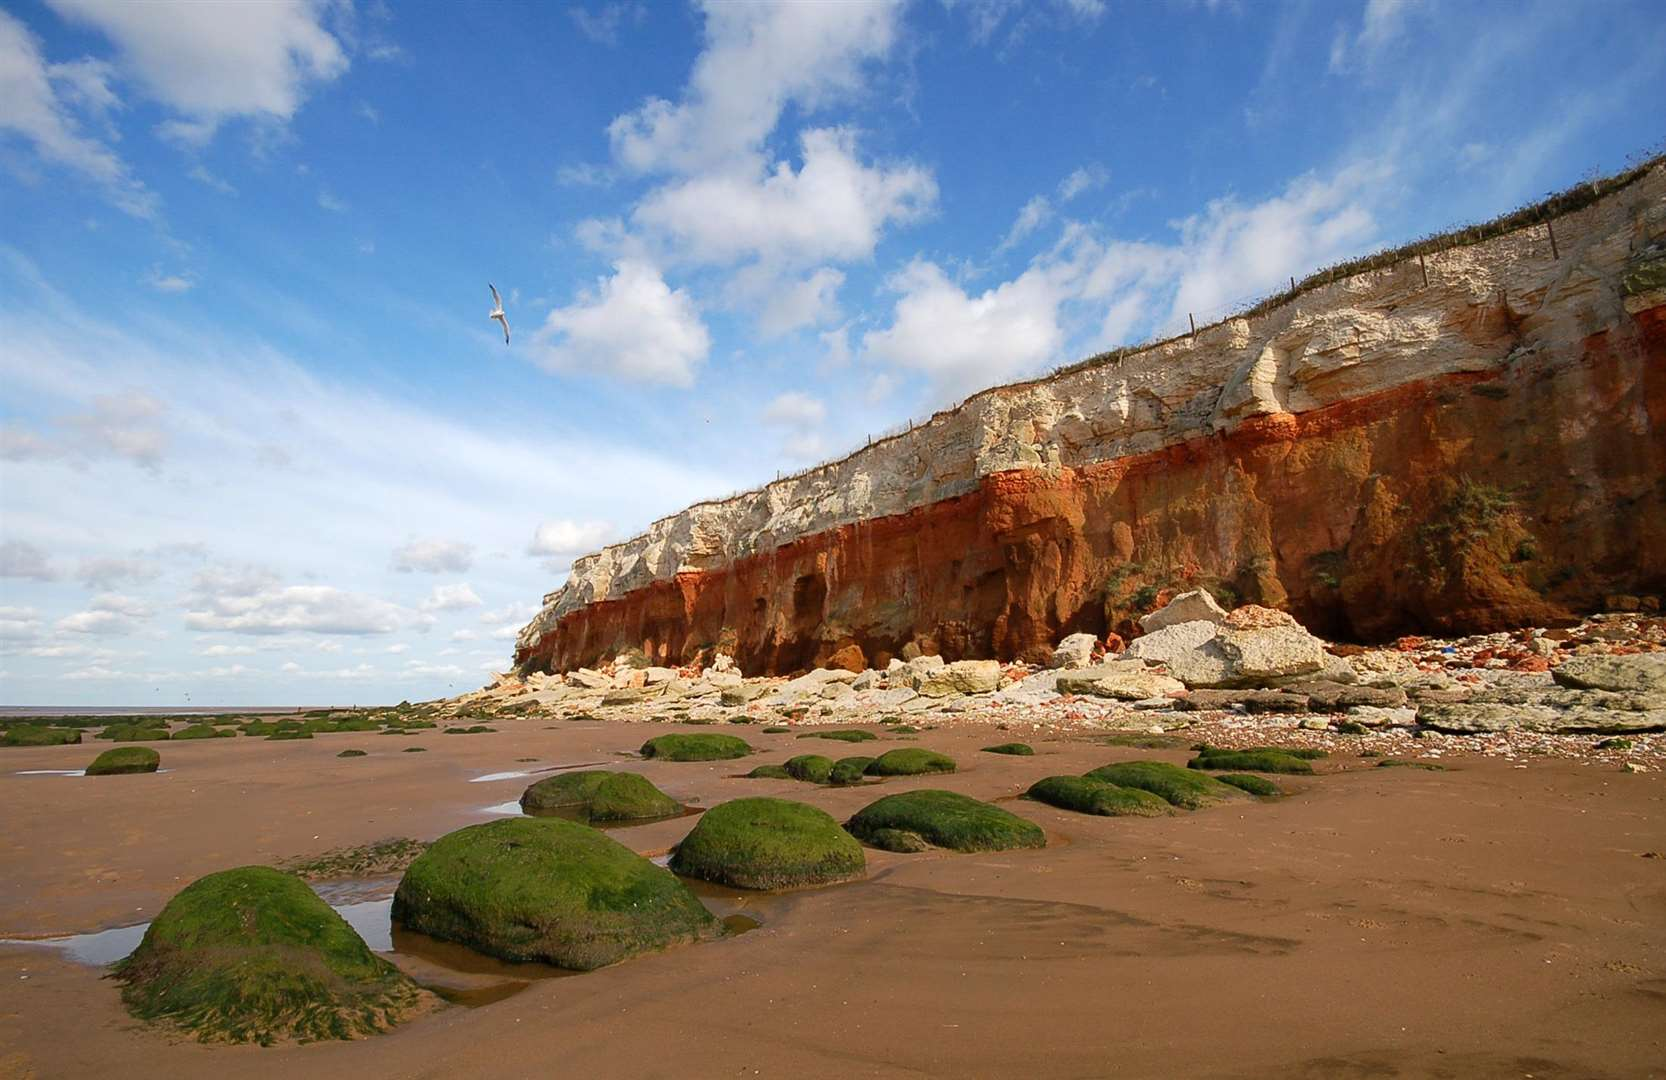 Council chiefs say they are encouraged by the government's response to the threat of coastal erosion